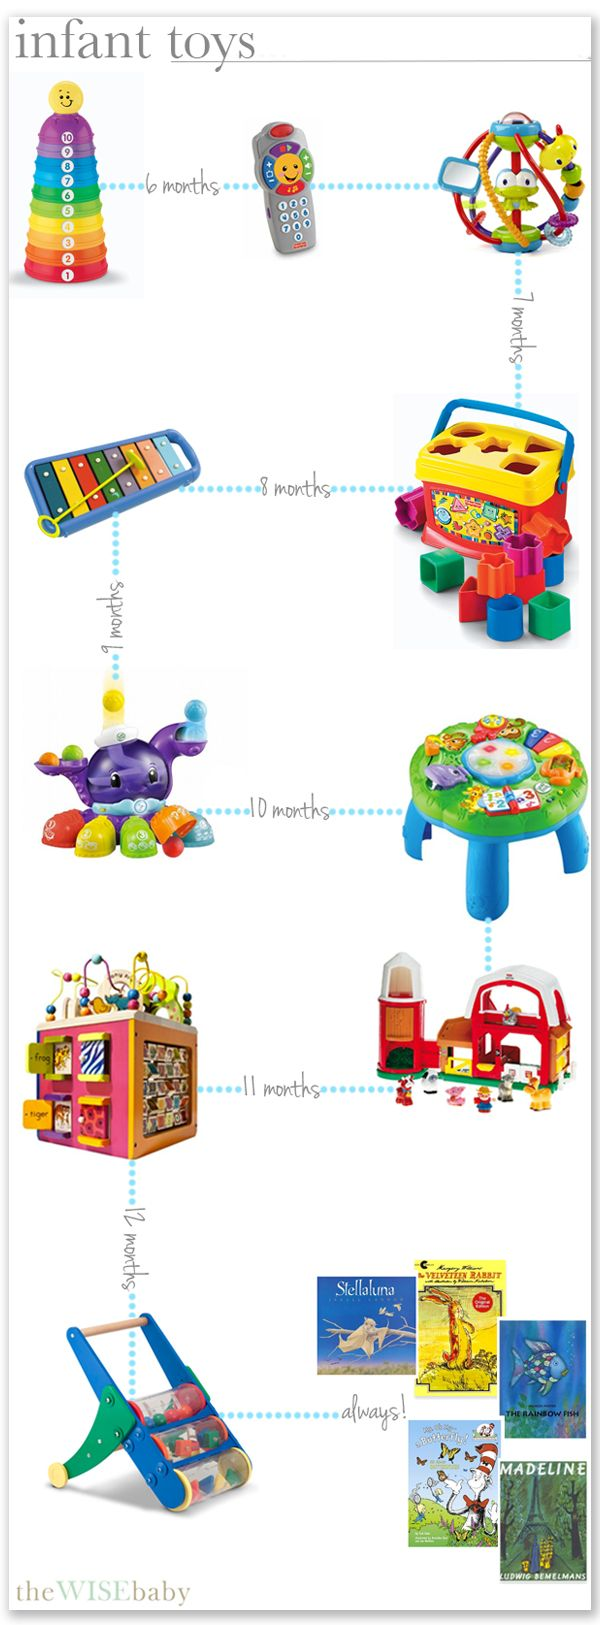 Sensory Toys For 12 Month Old : Best ideas about sensory activities for month old on